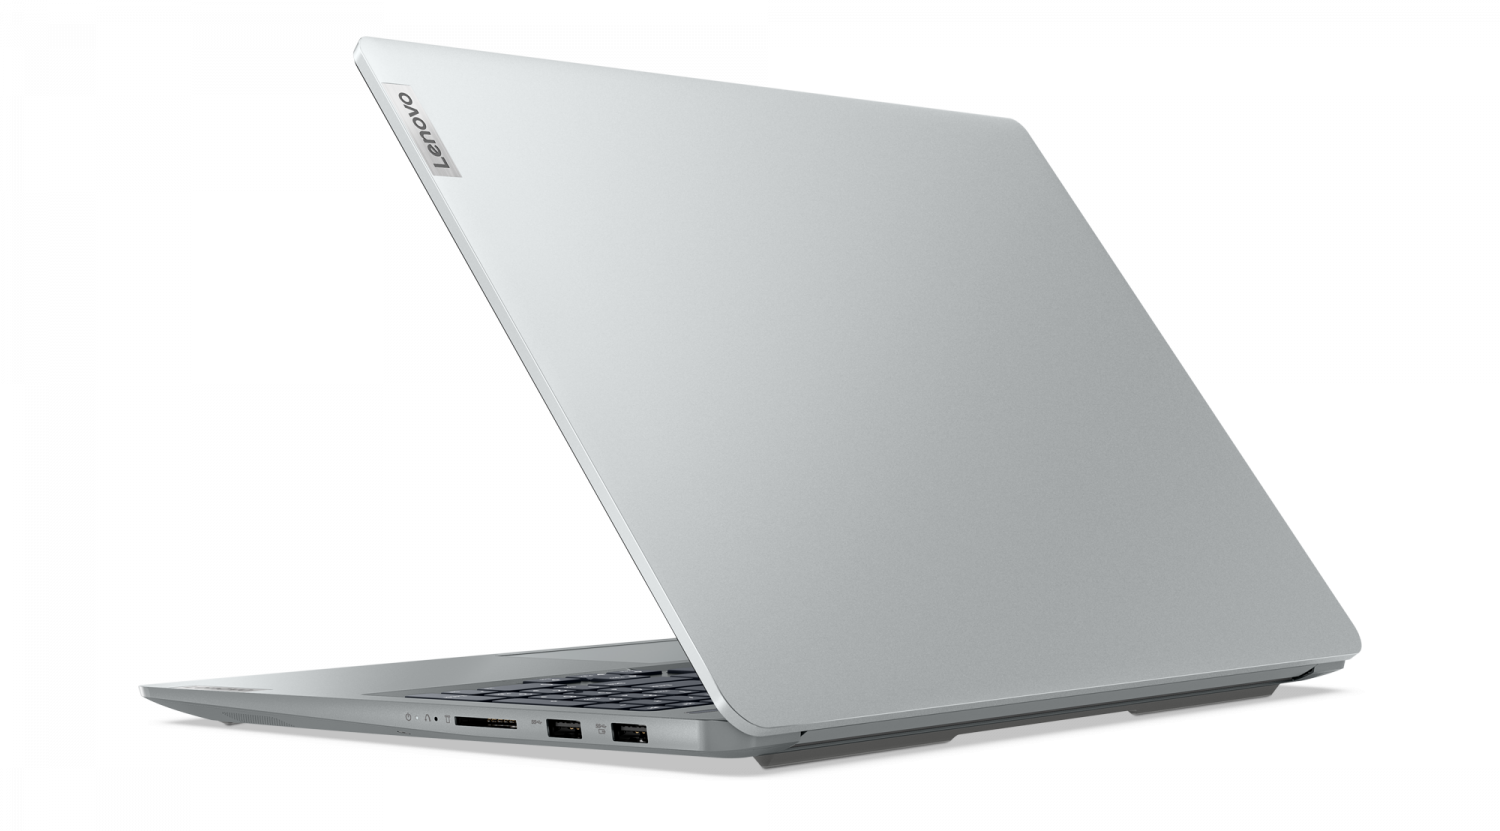 Windows on ARM for the Win: Lenovo Launches IdeaPad 5G Clamshell Laptop